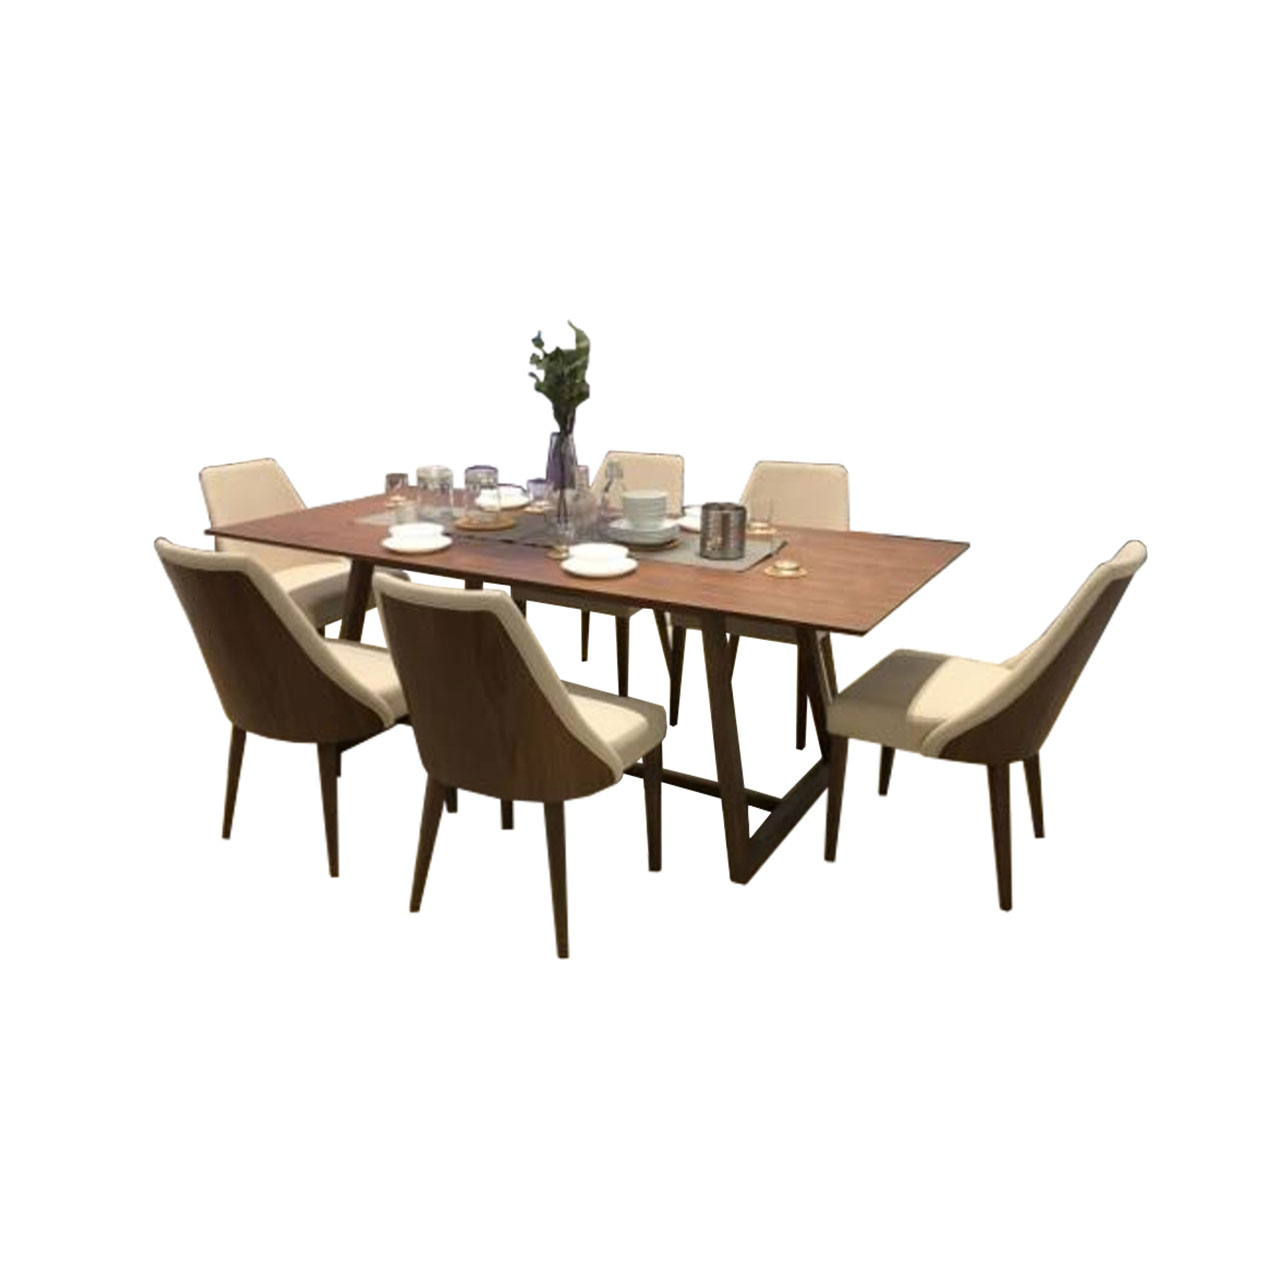 Dion Dining Set Furniture Store Manila Philippines Urban Concepts